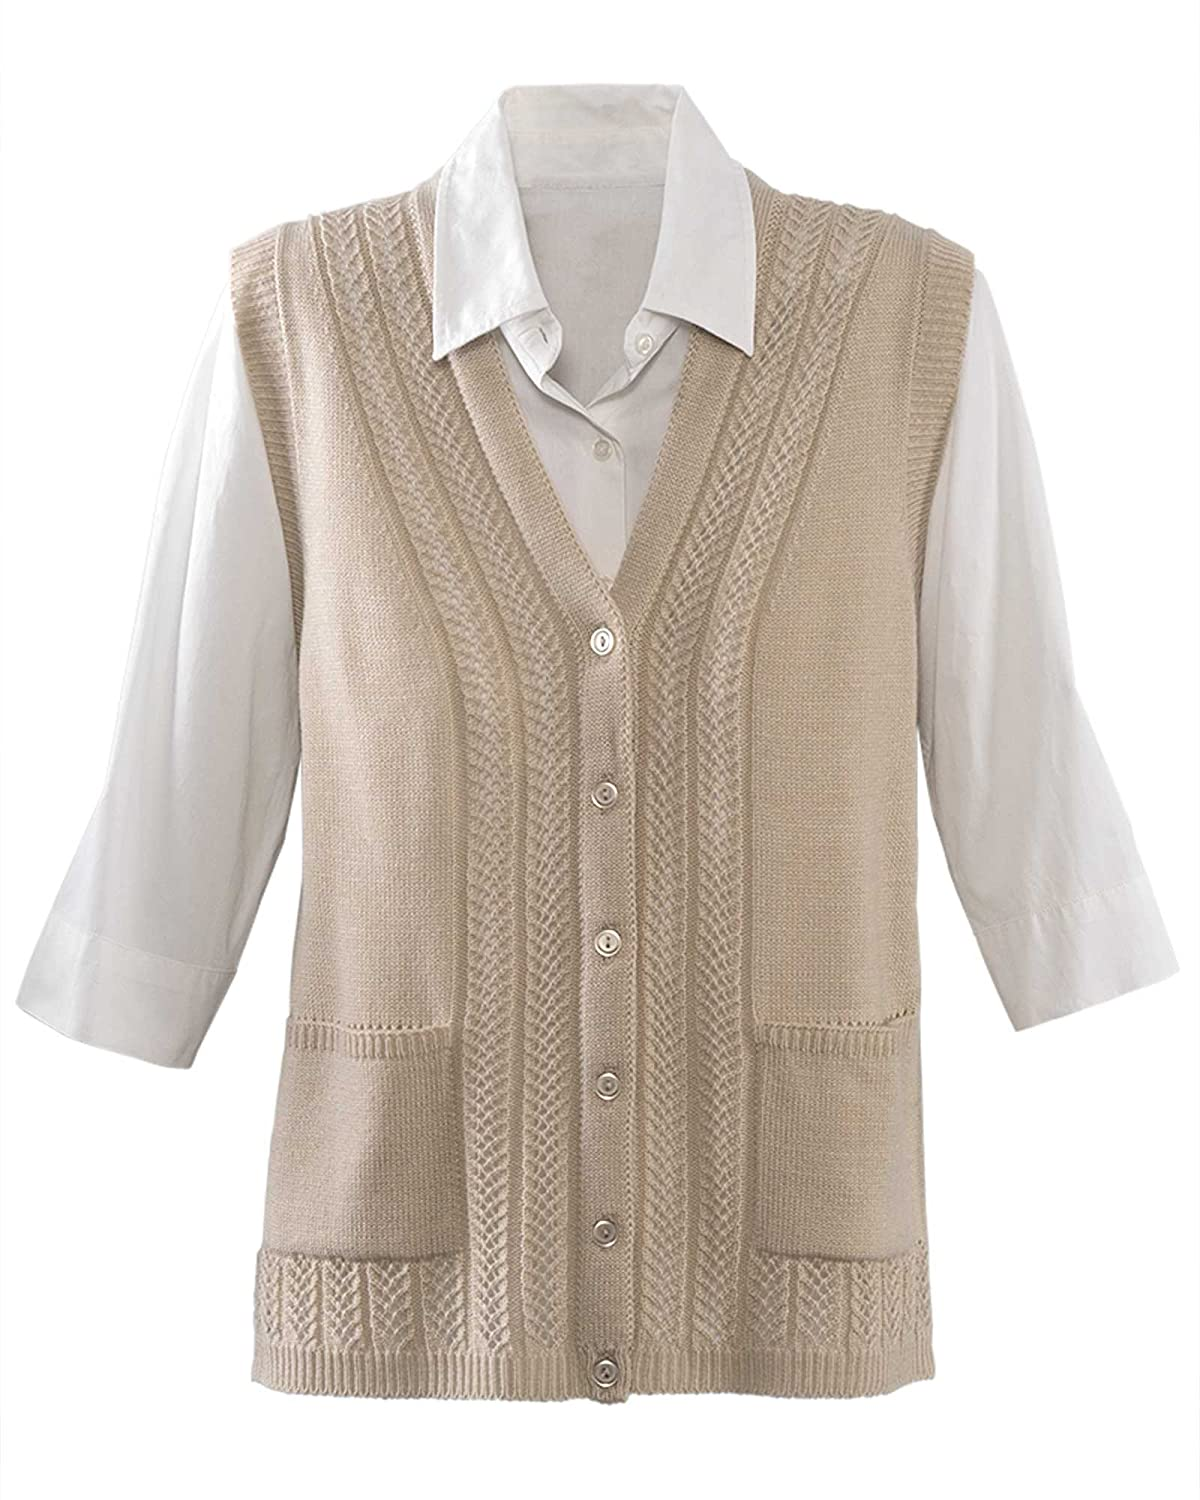 1940s Style Sweaters and Knit Tops National Classic Sweater Vest $34.95 AT vintagedancer.com